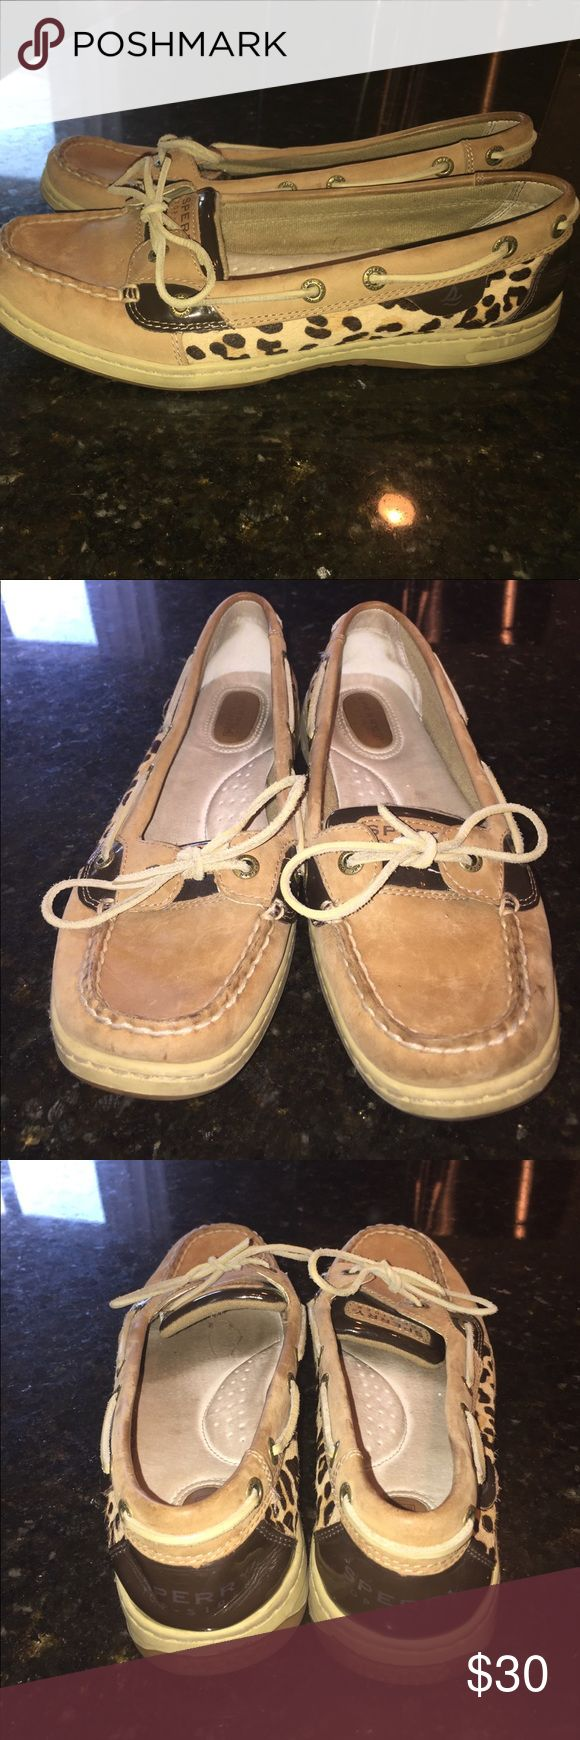 Leopard sperrys These leopard print Sperrys were only worn a couple of times. They are in very good shape. Sperry Top-Sider Shoes Flats & Loafers